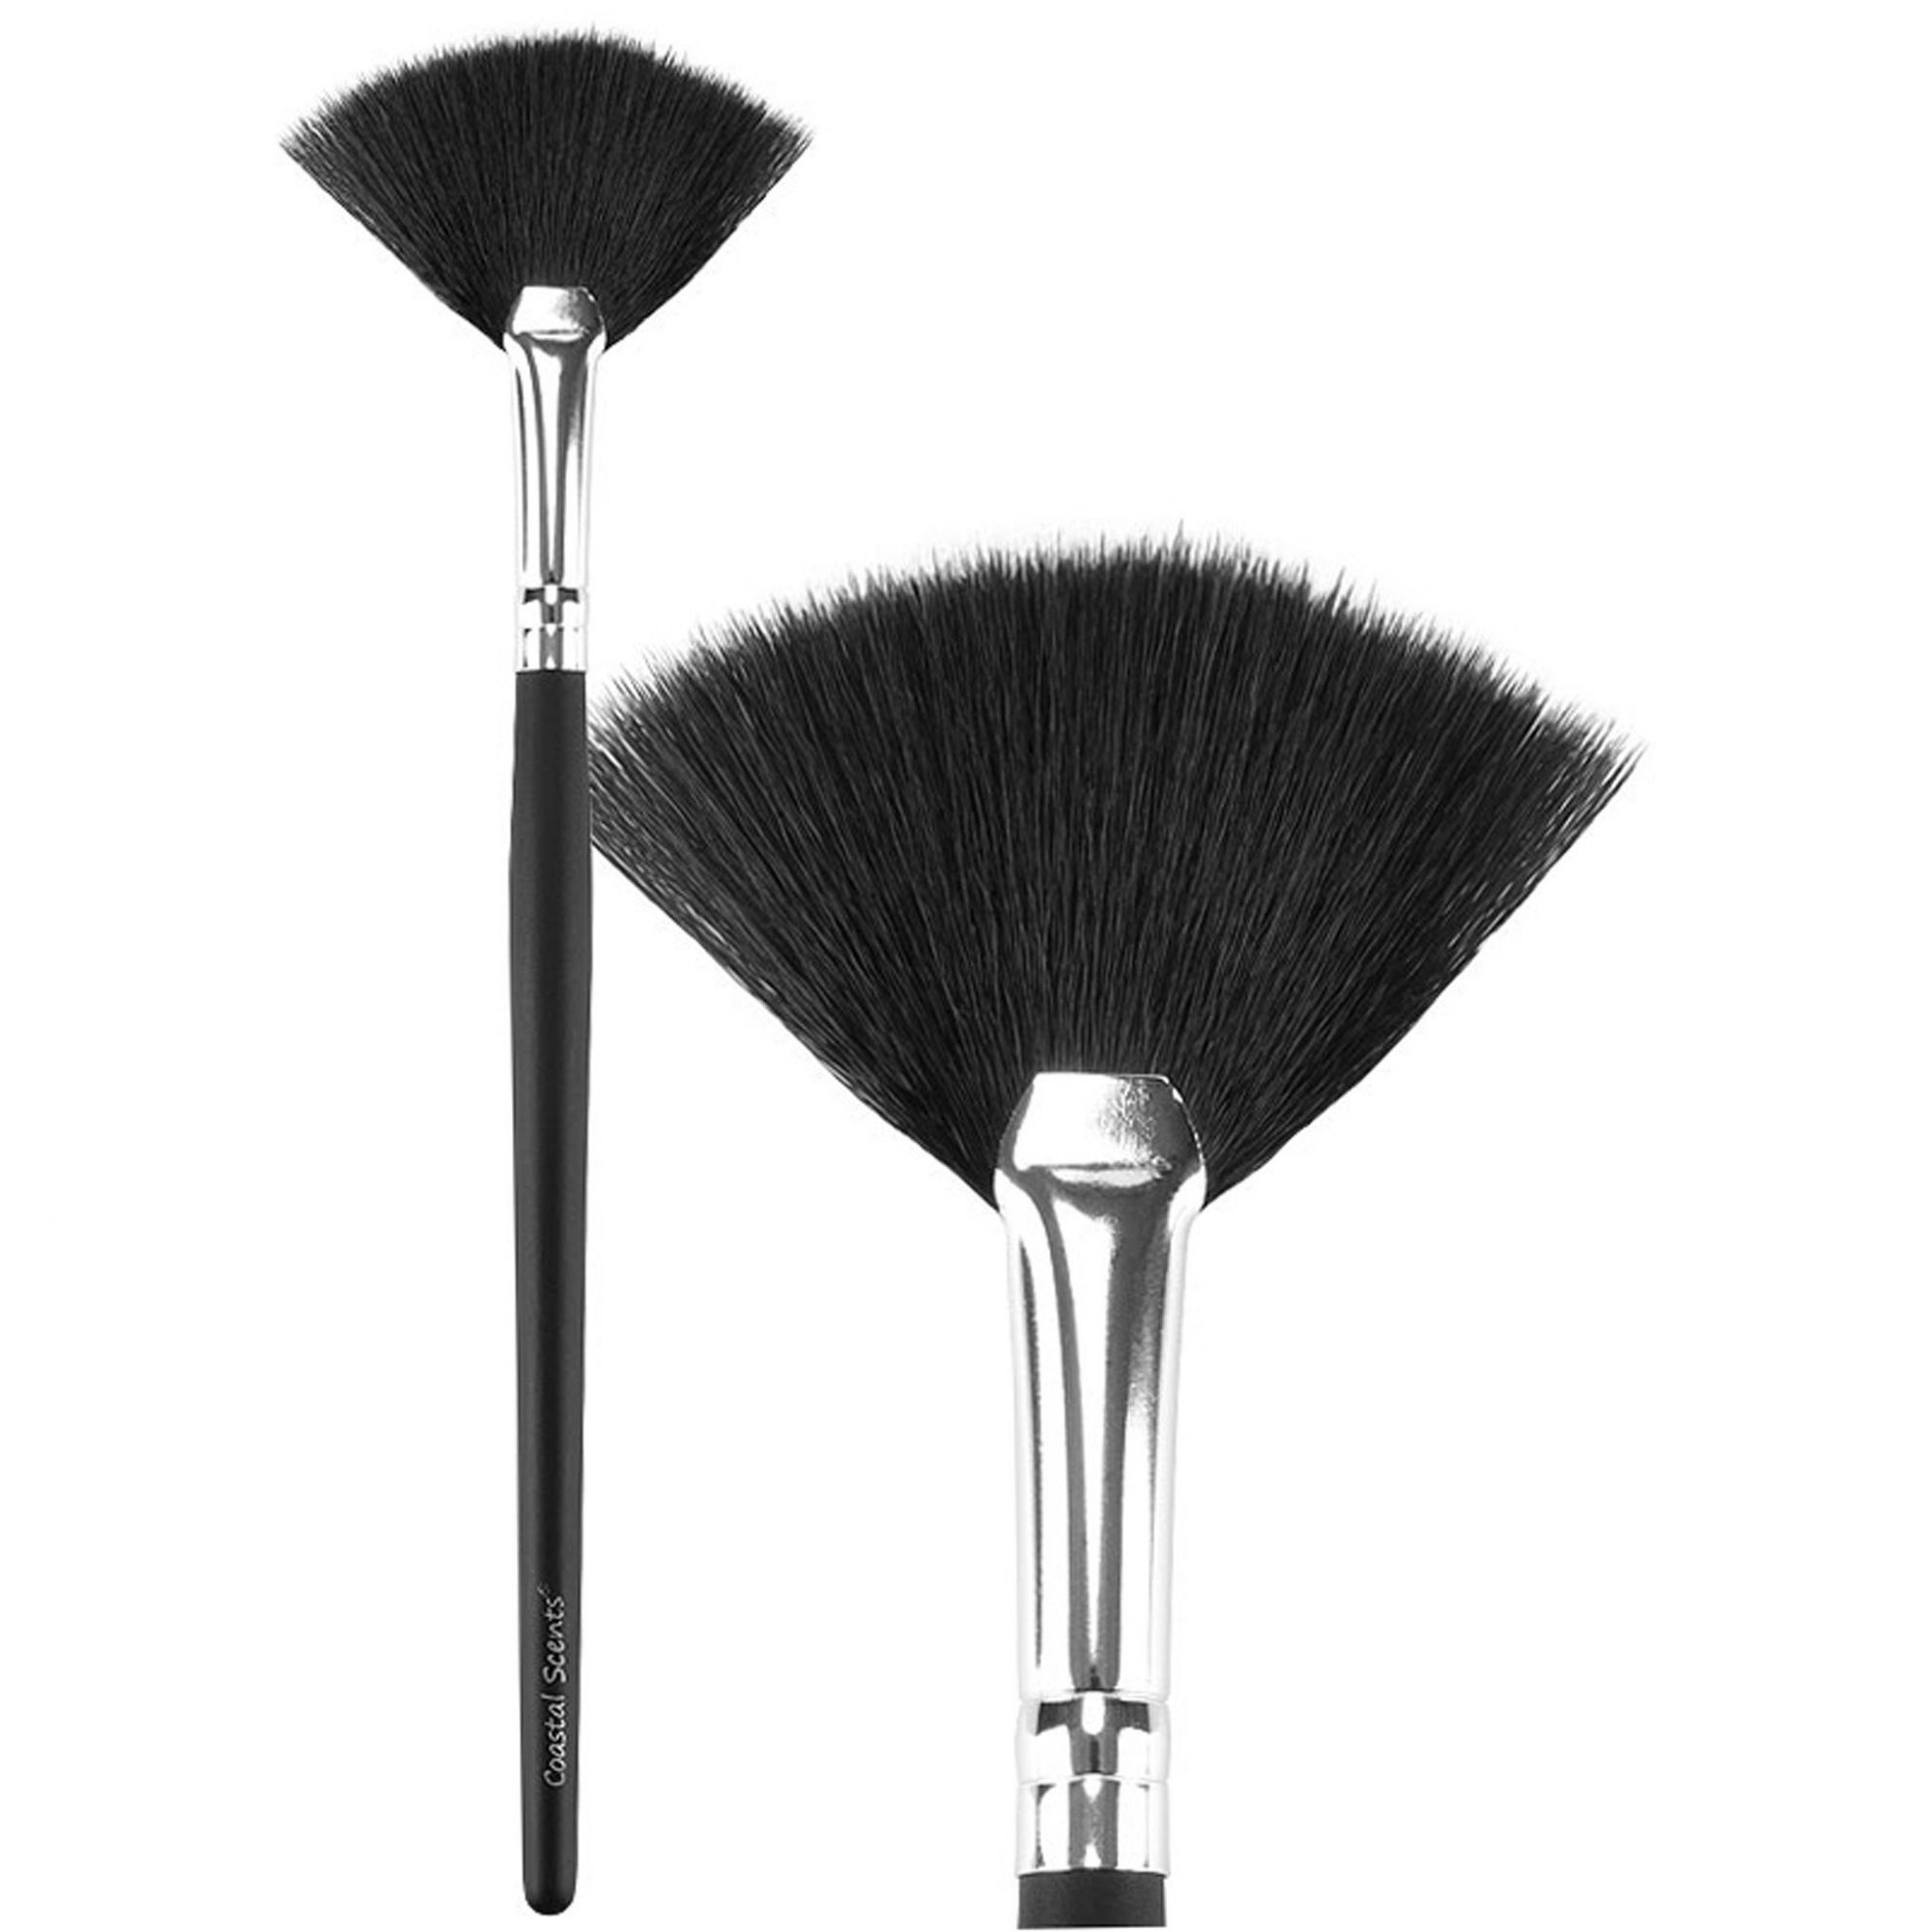 Coastal Scents | S39 Classic Small Fan Brush Synthetic